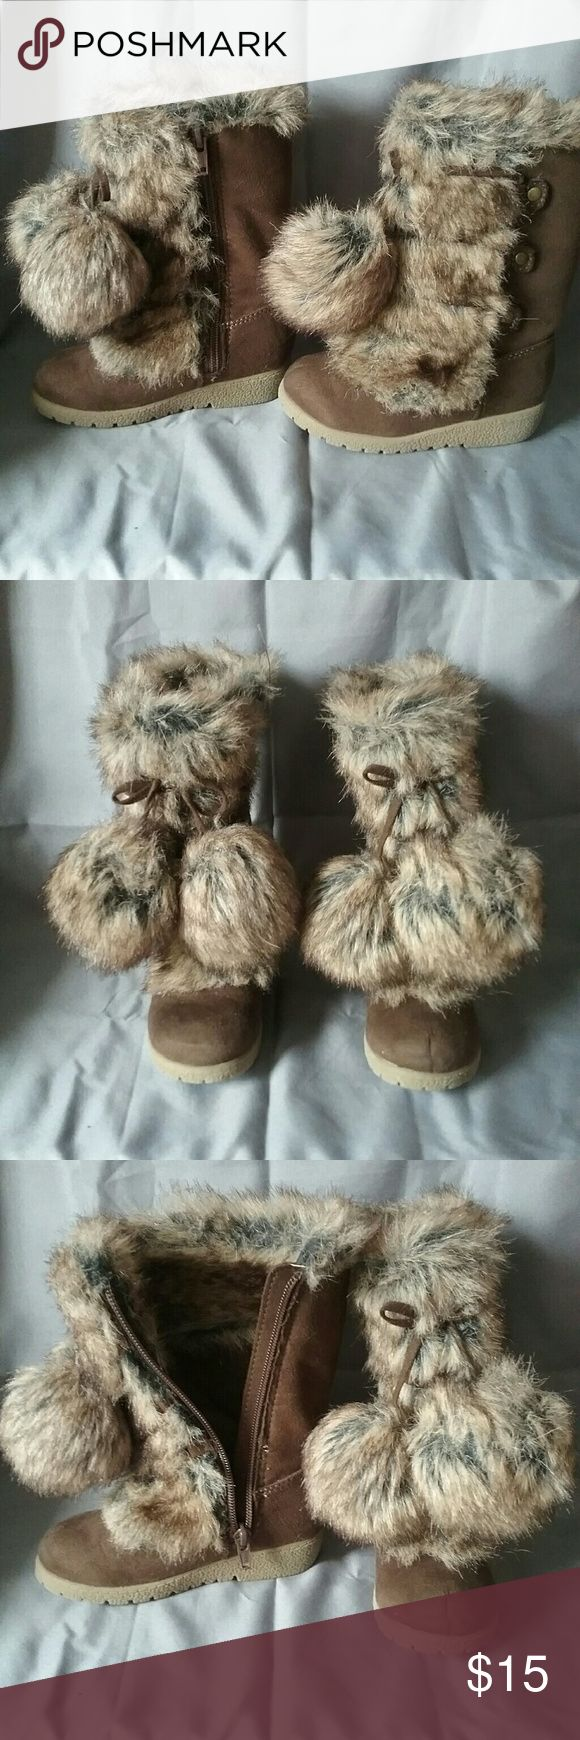 Furry Boots The cutest boots ever! I wish we had a pair in every size. Shoes Boots